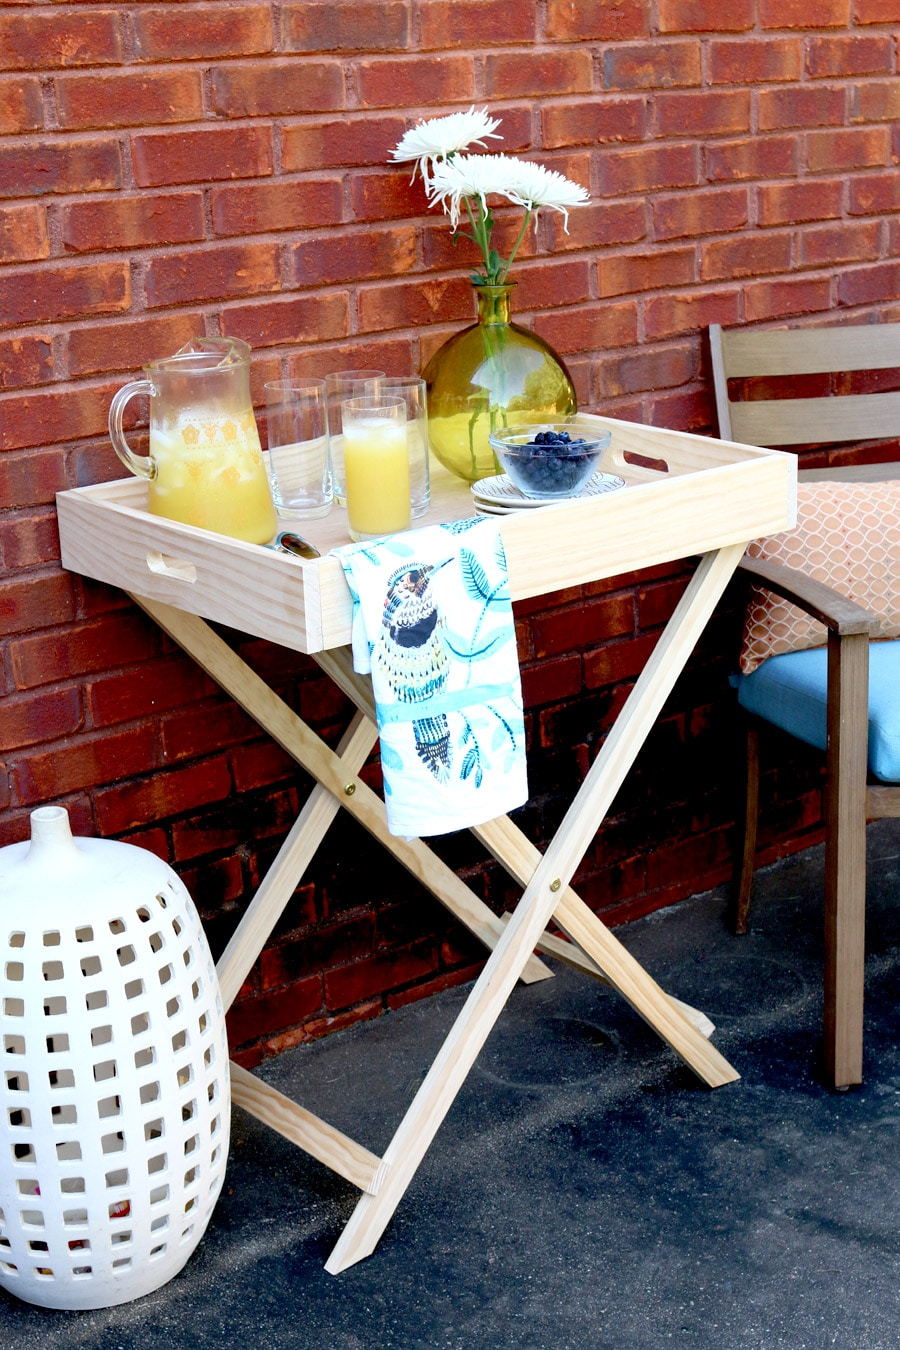 Tutorial on how to build a DIY West Elm Butler Stand